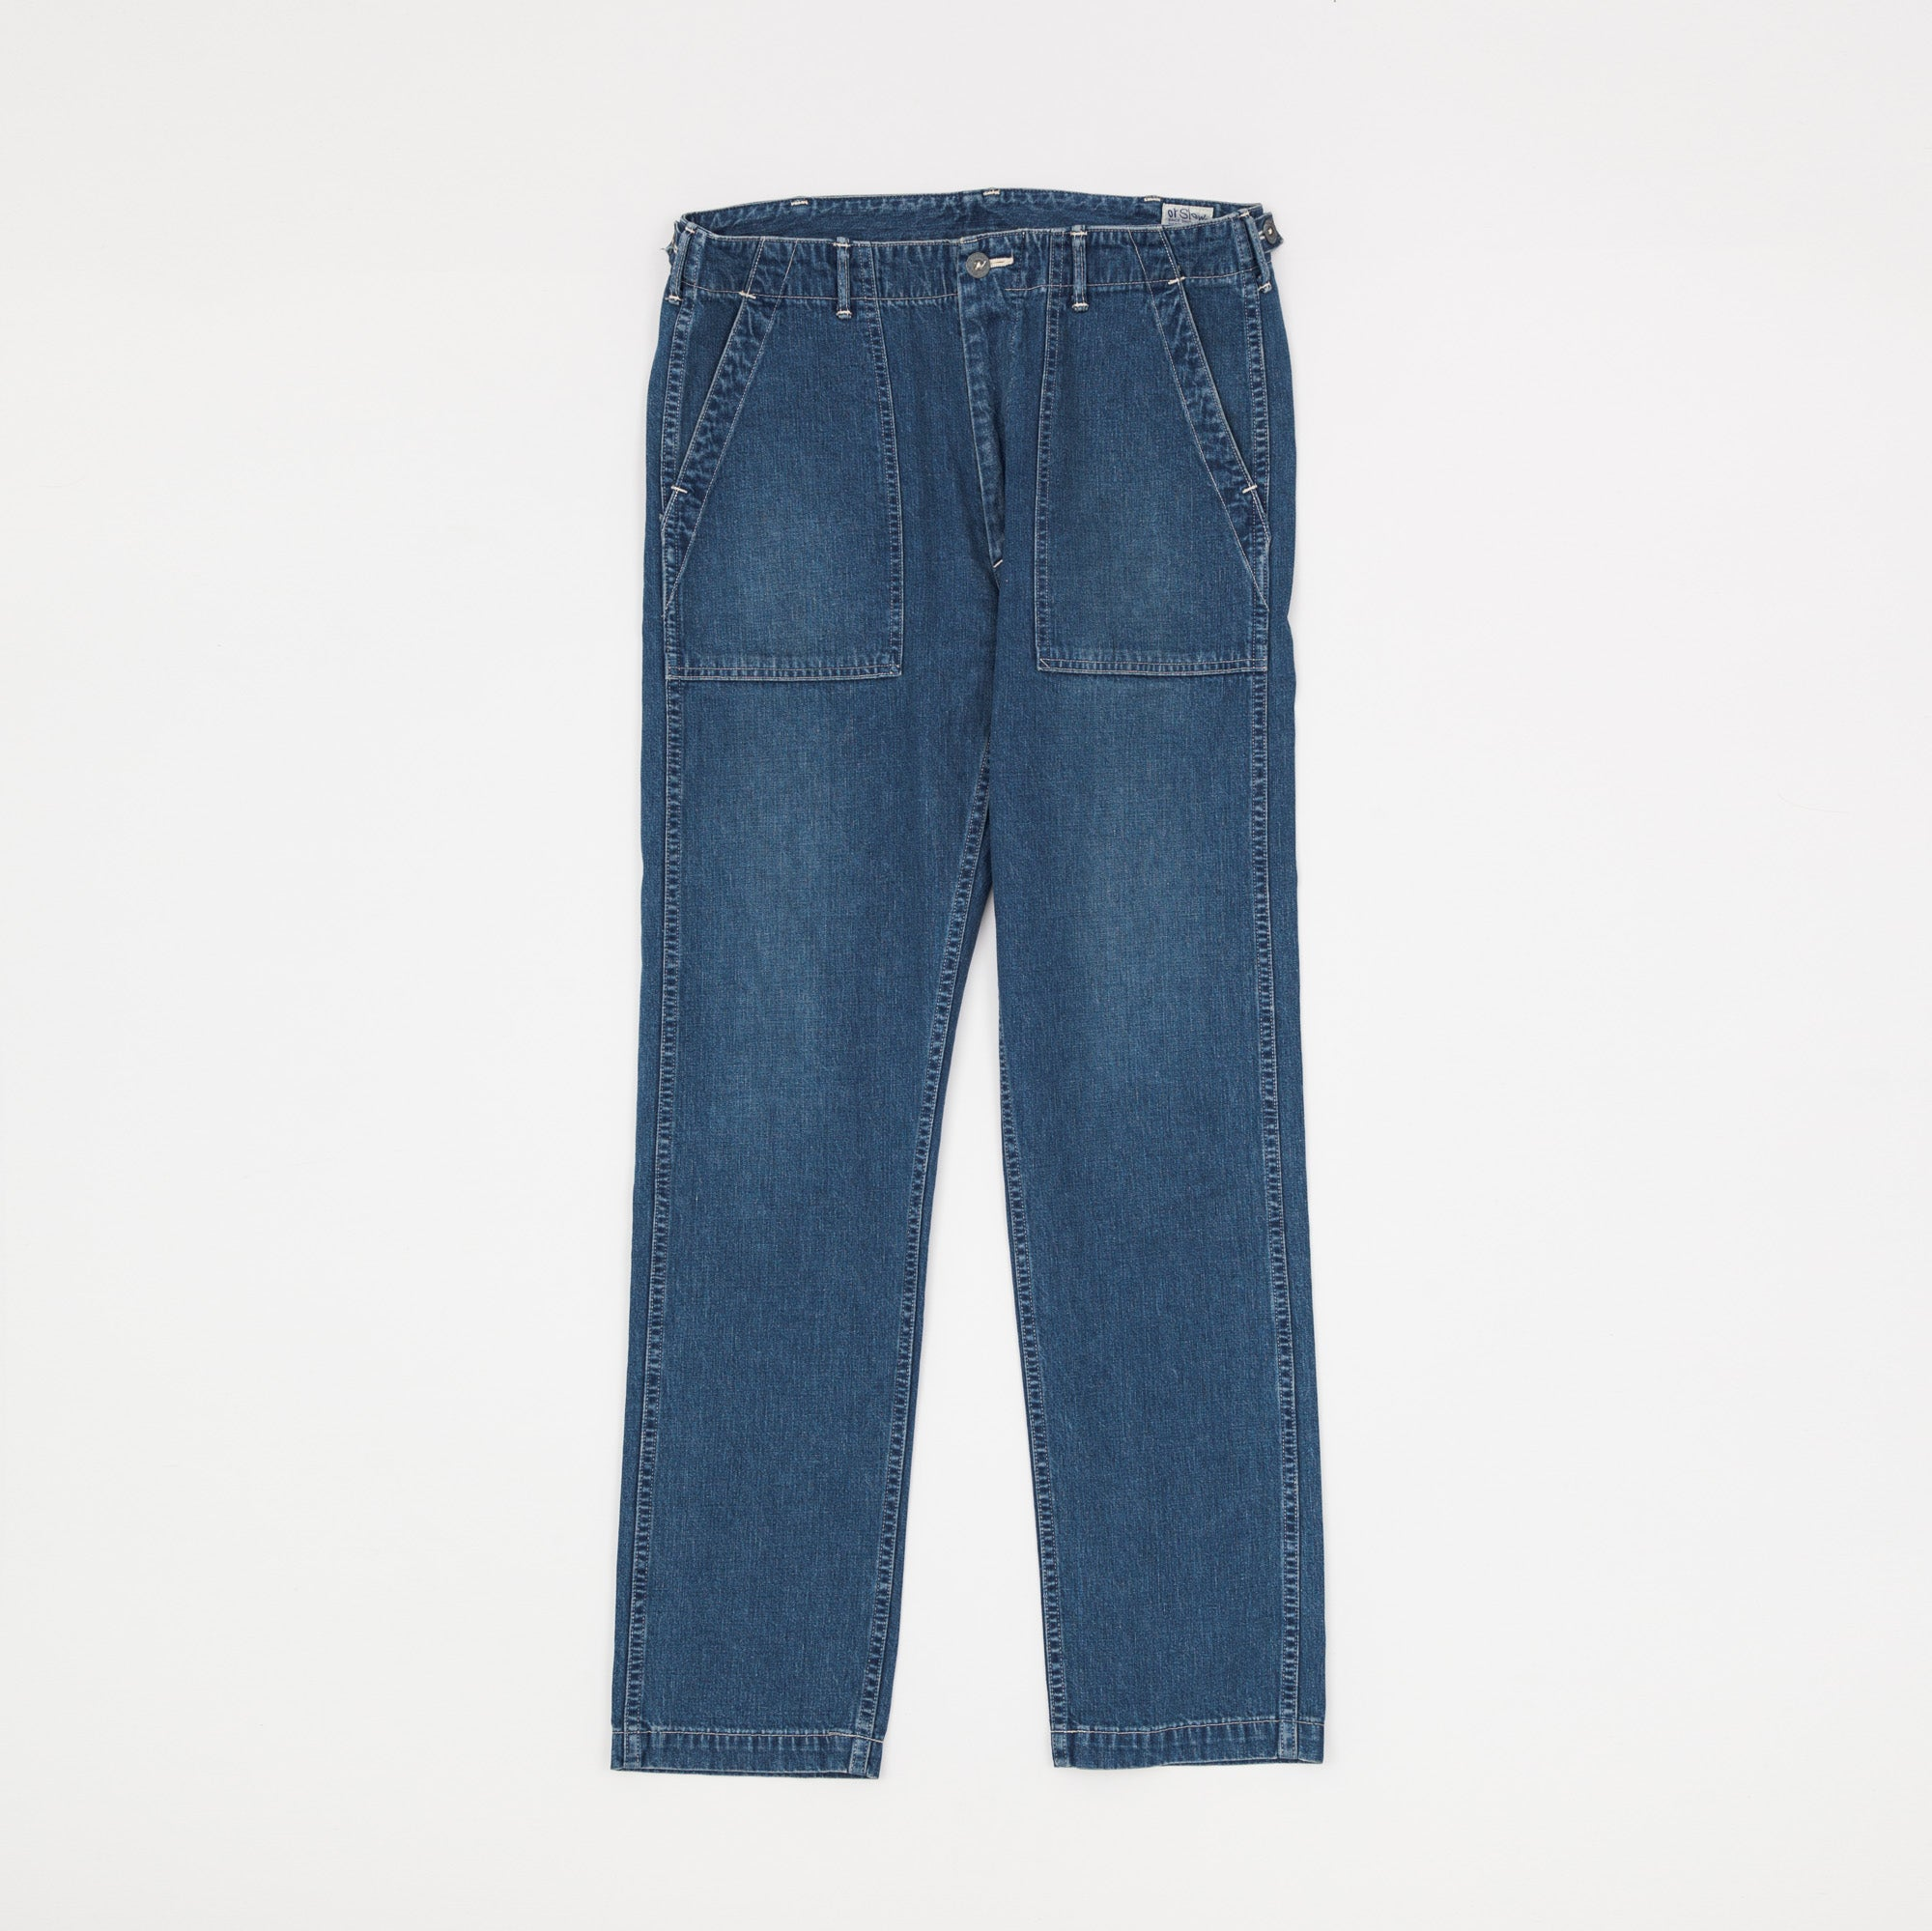 Orslow Denim Jeans